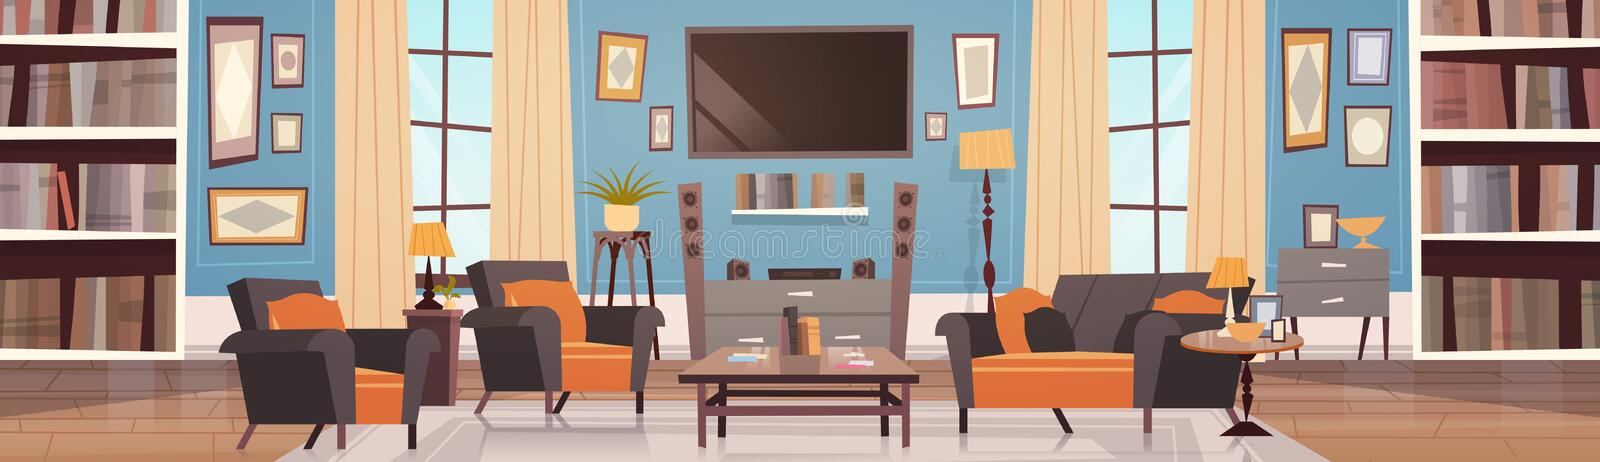 Cozy Living Room Interior Design With Modern Furniture, Windows, Sofa, Table Armchairs, Bookcase And Tv Horizontal. Banner Flat Vector Illustration royalty free illustration